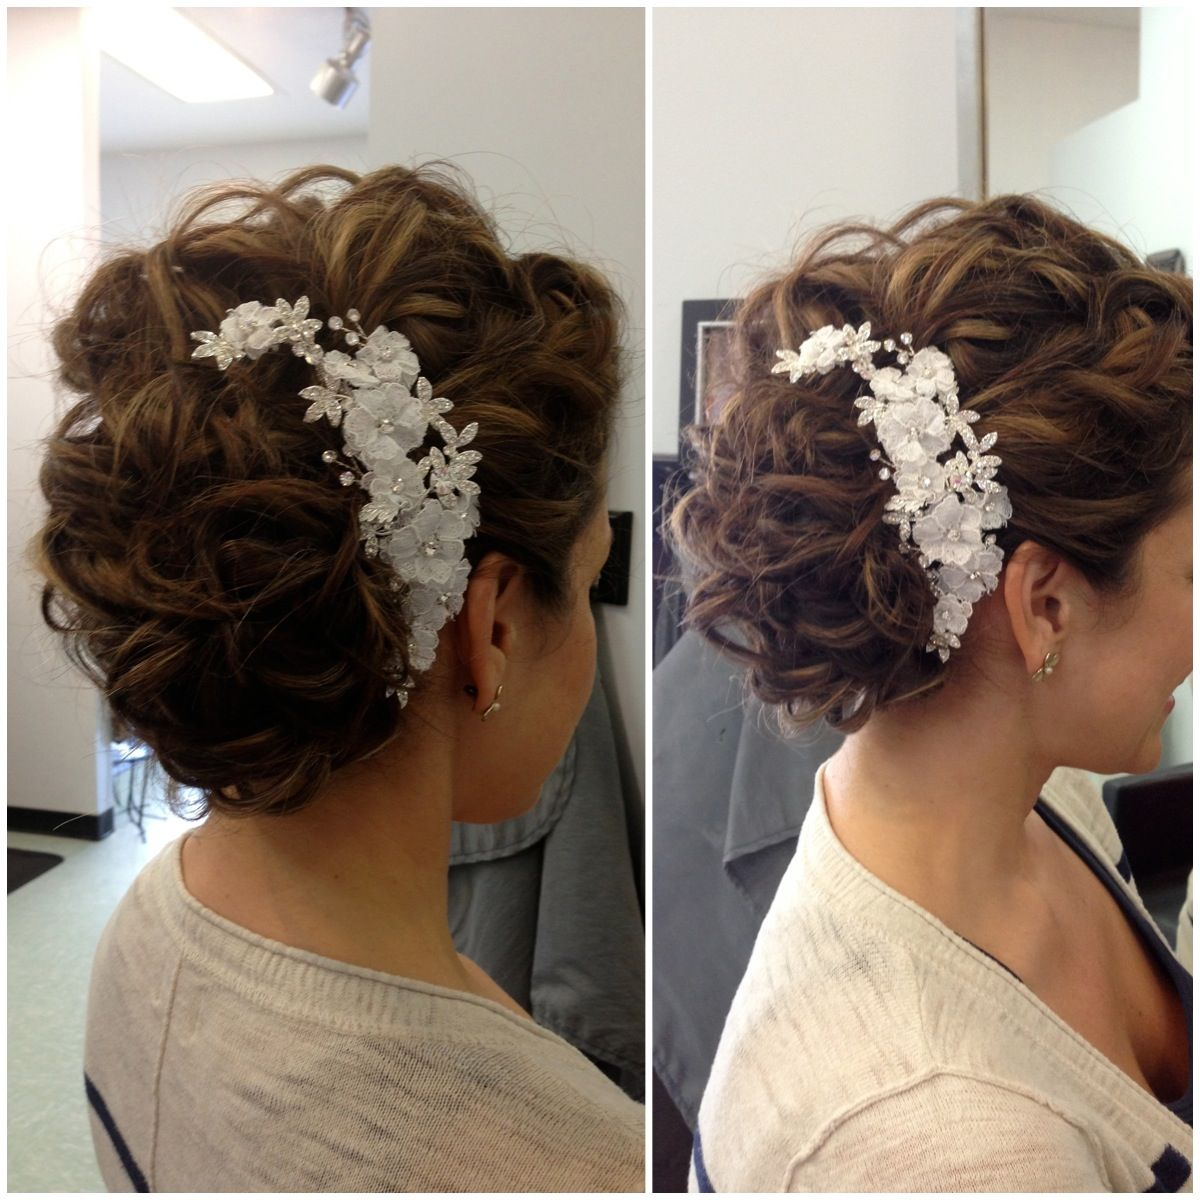 hair pieces for wedding Wedding hair updo hair accessories loose curls